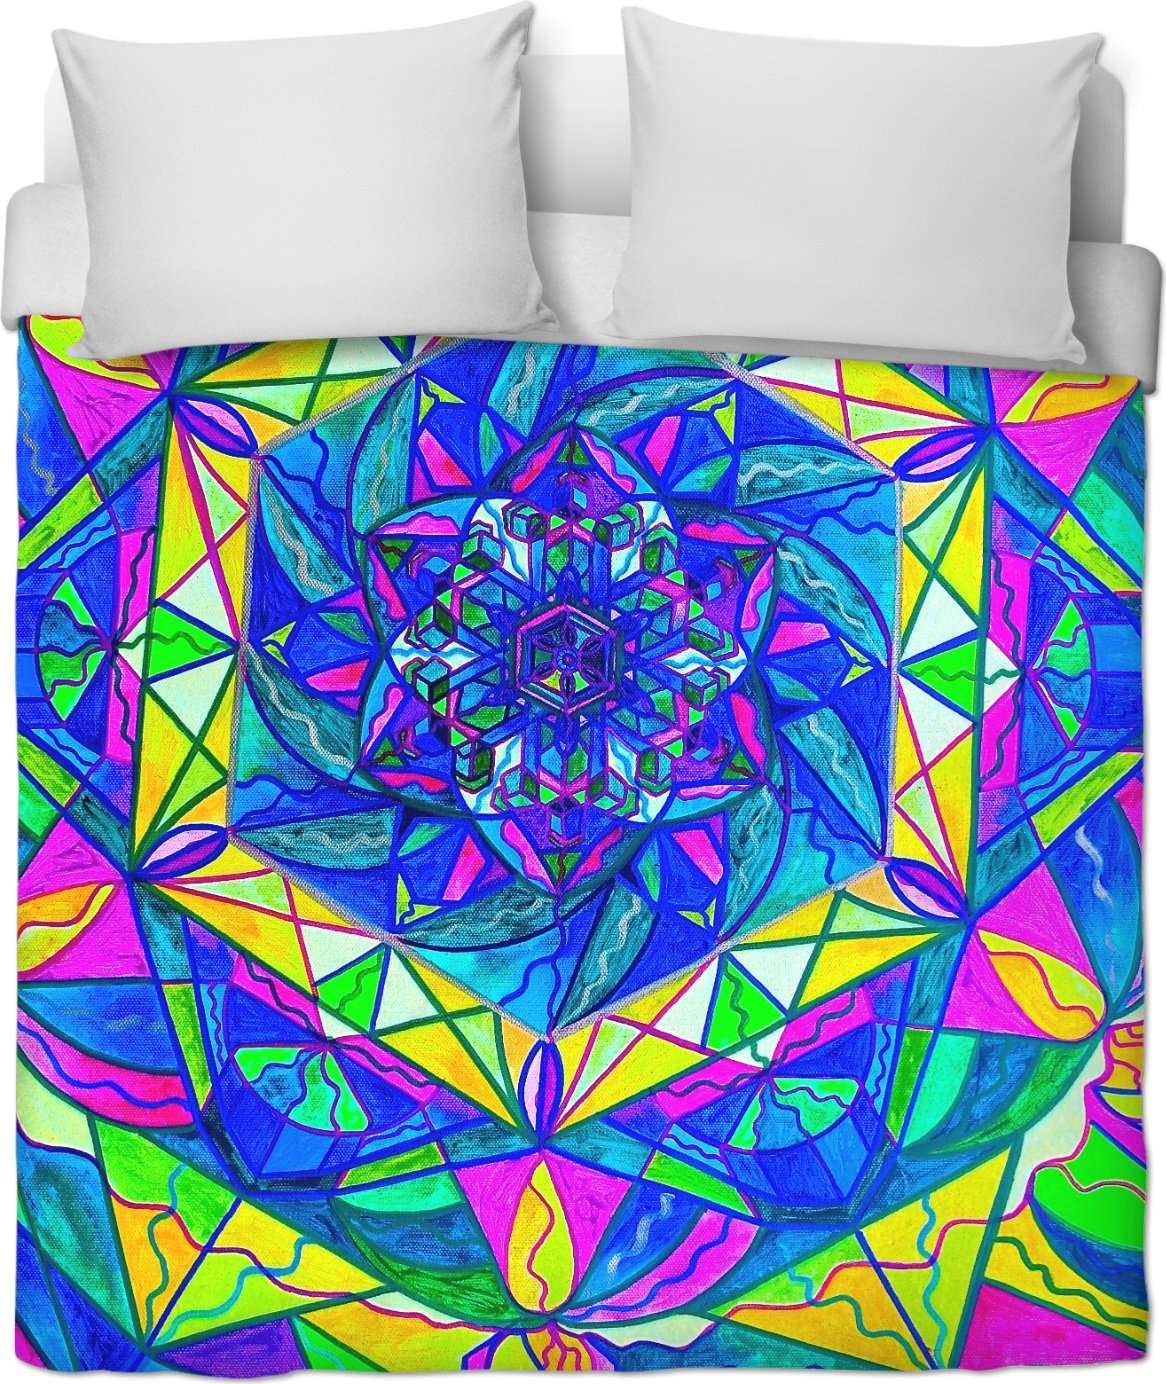 Positive Focus - Duvet Cover